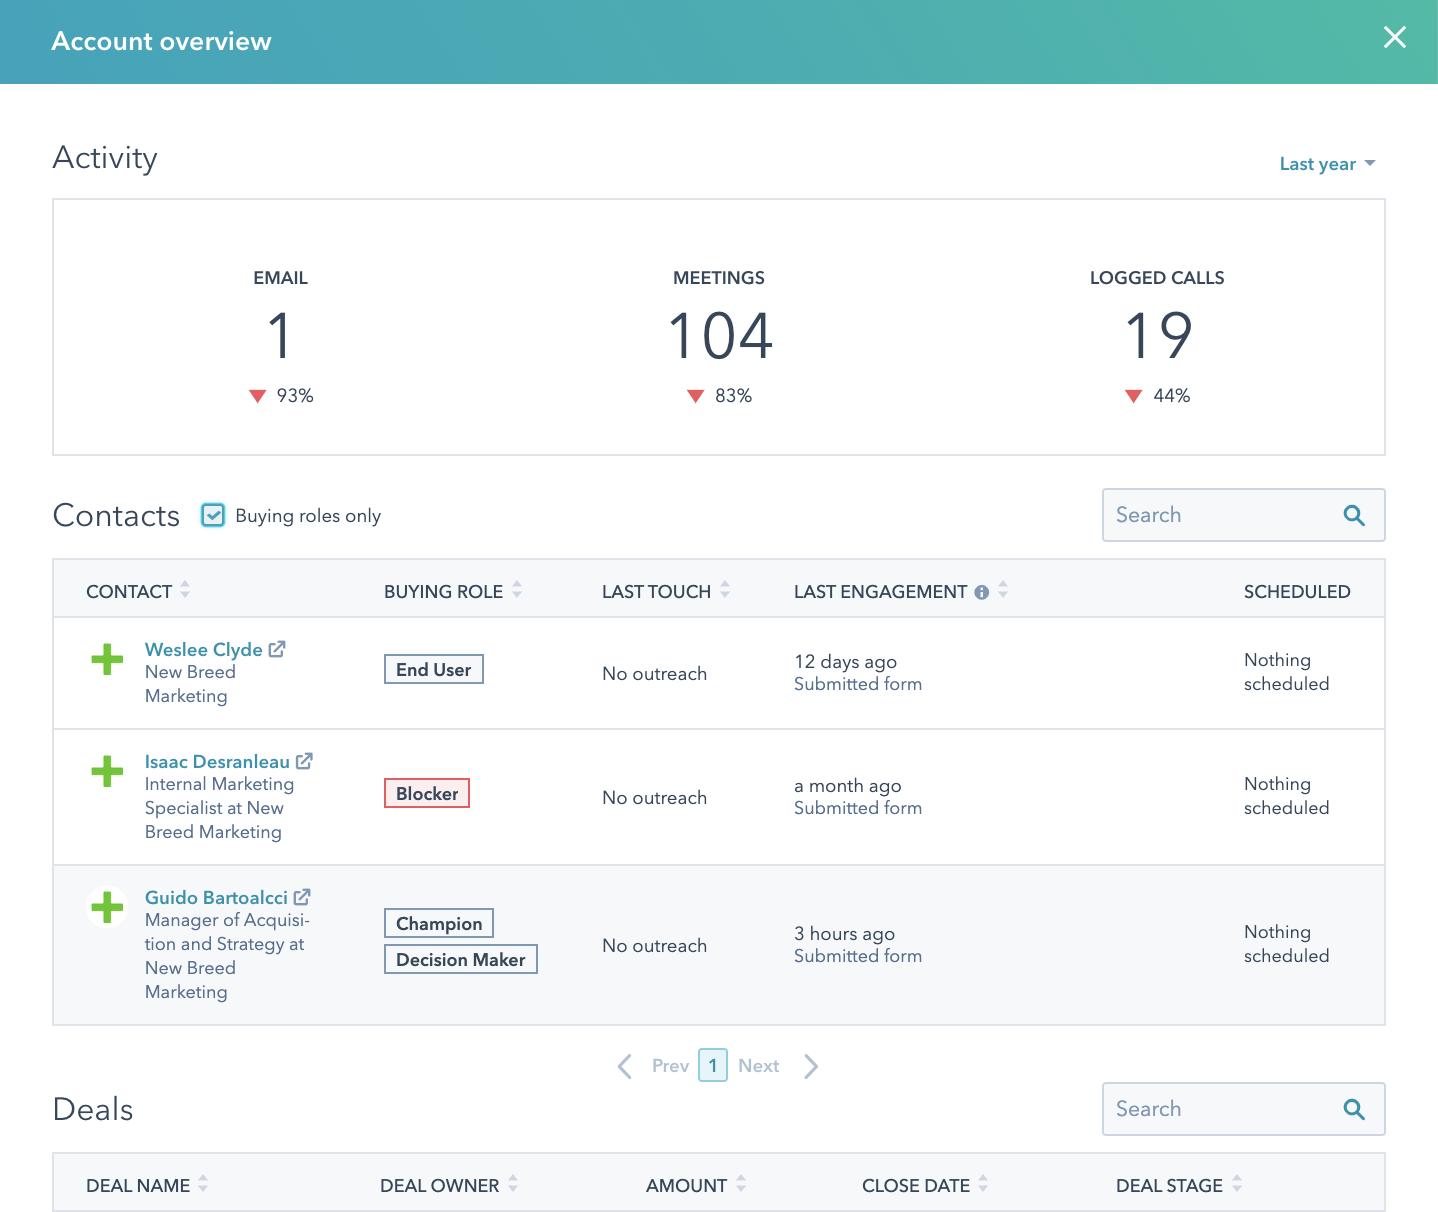 ABM Account Overview